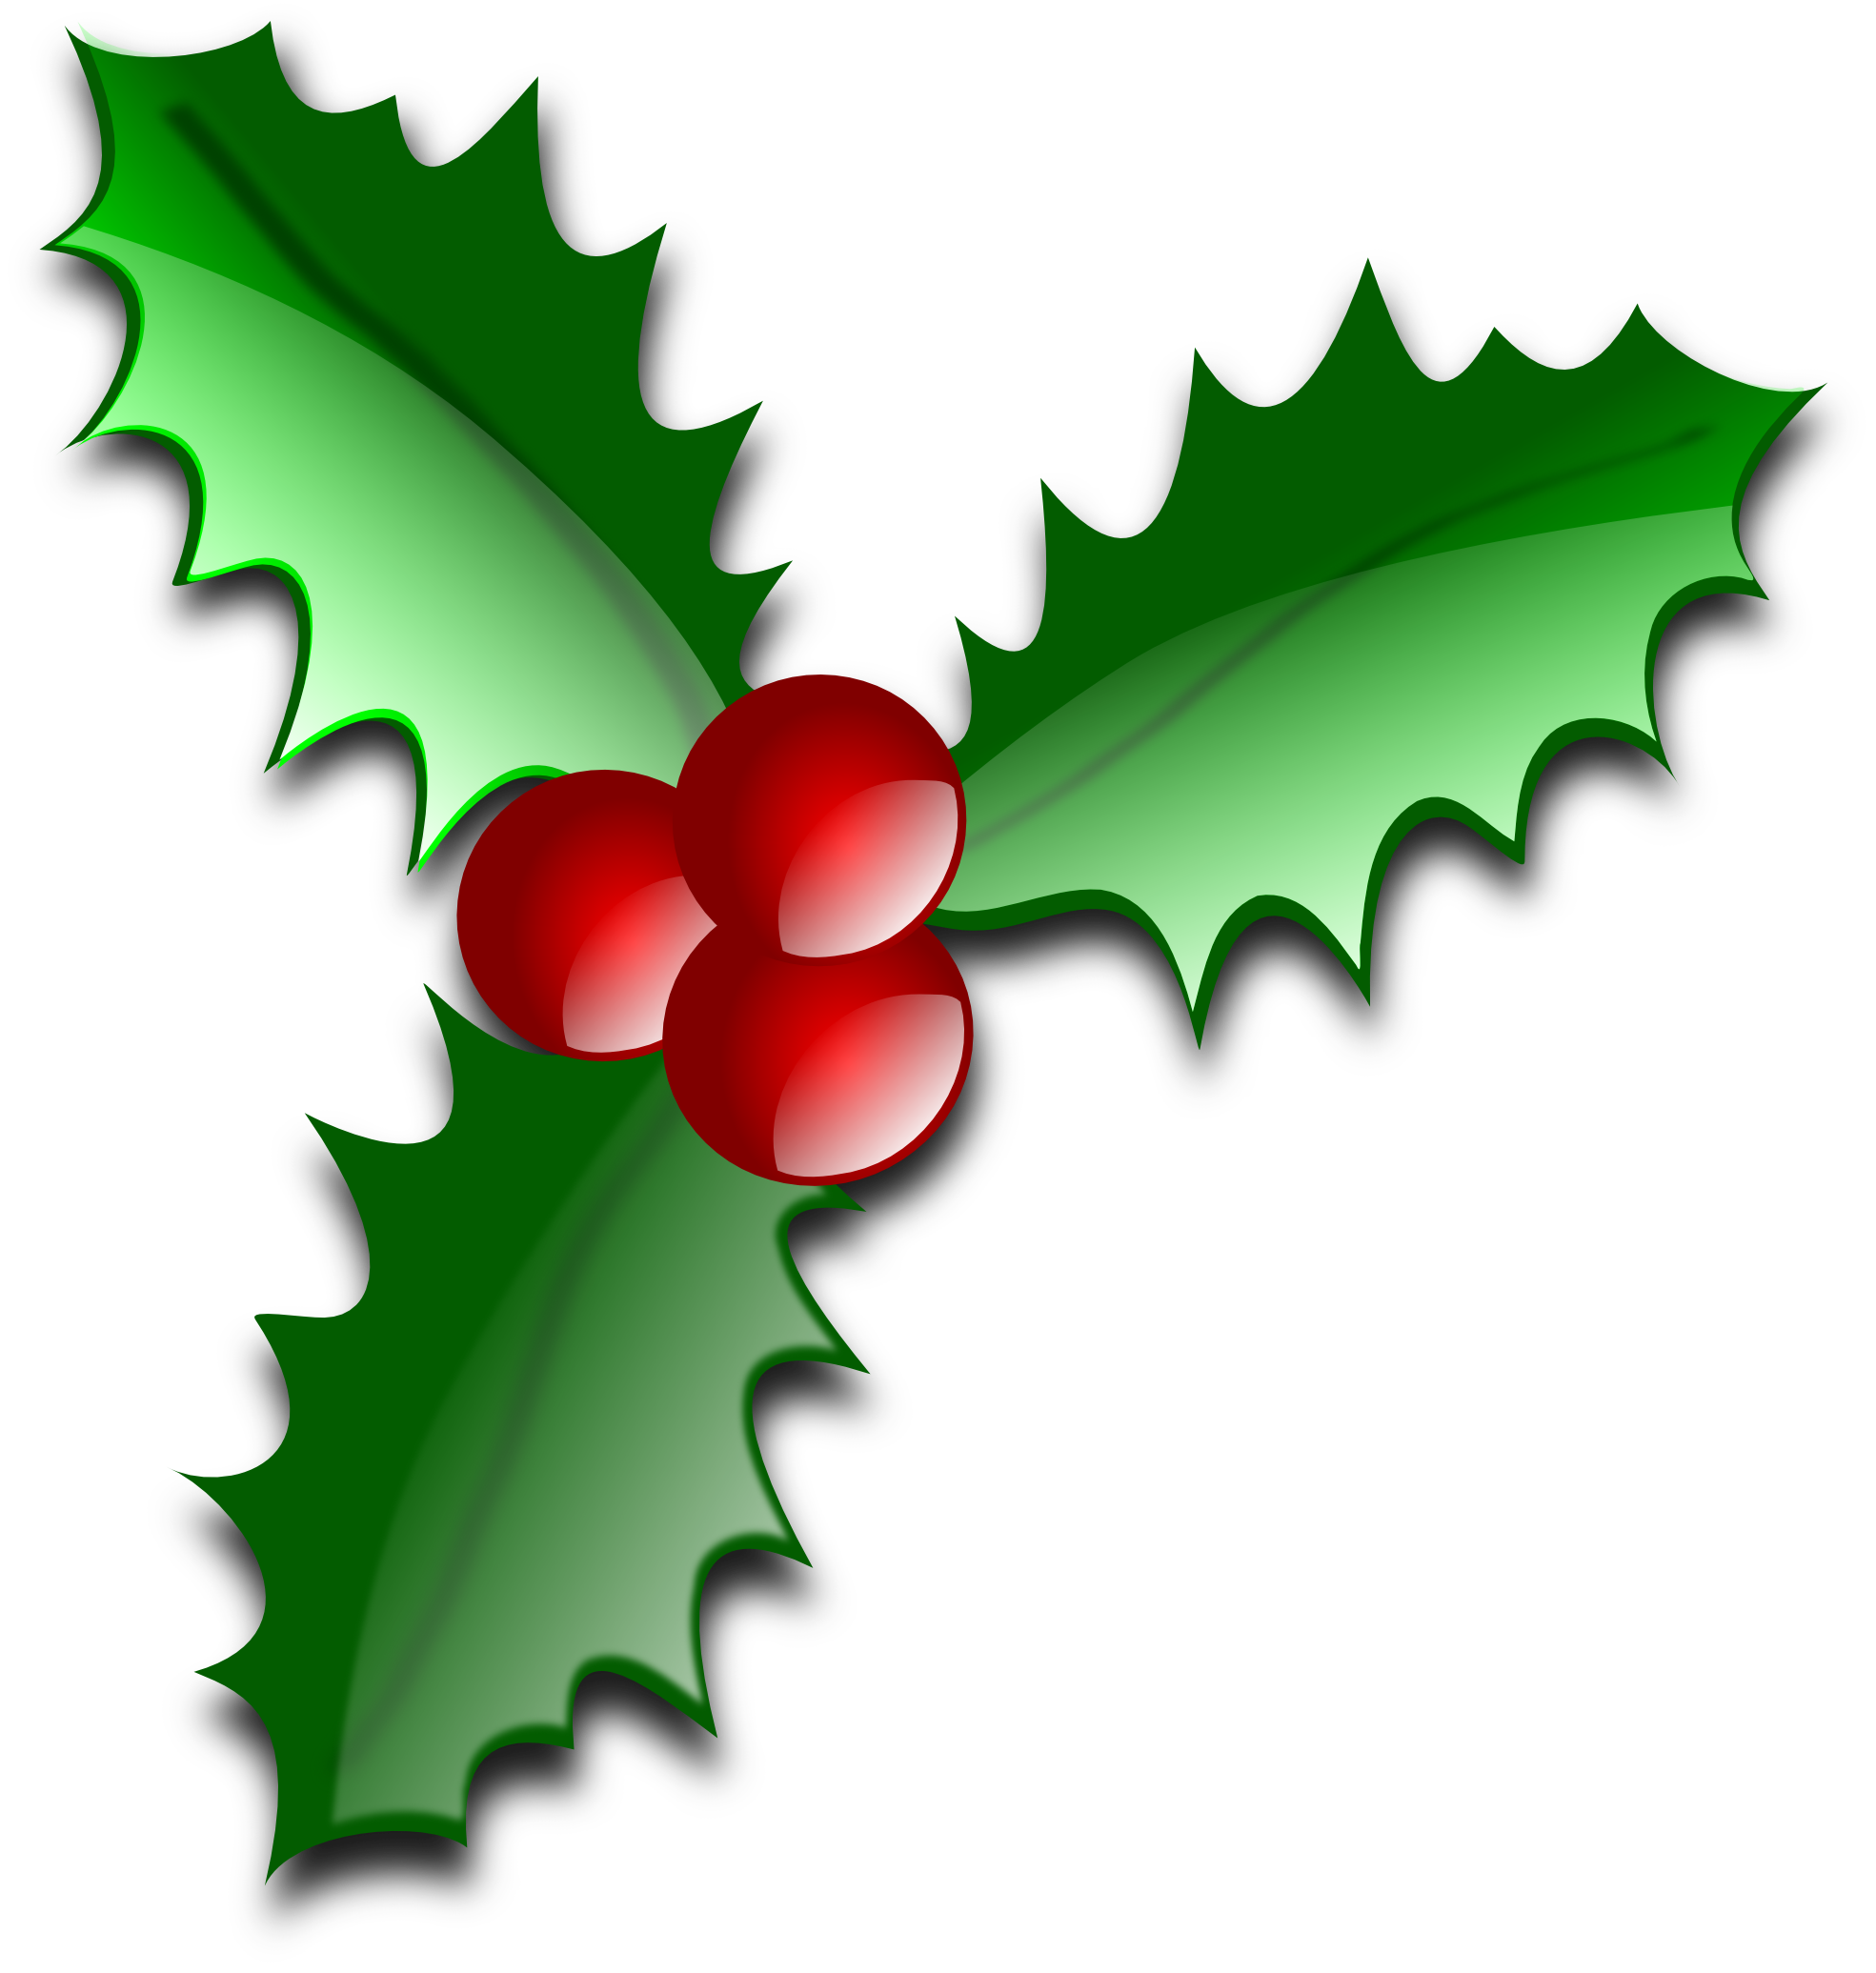 Holiday Clip Art For Microsoft Outlook F-Holiday clip art for microsoft outlook free-10